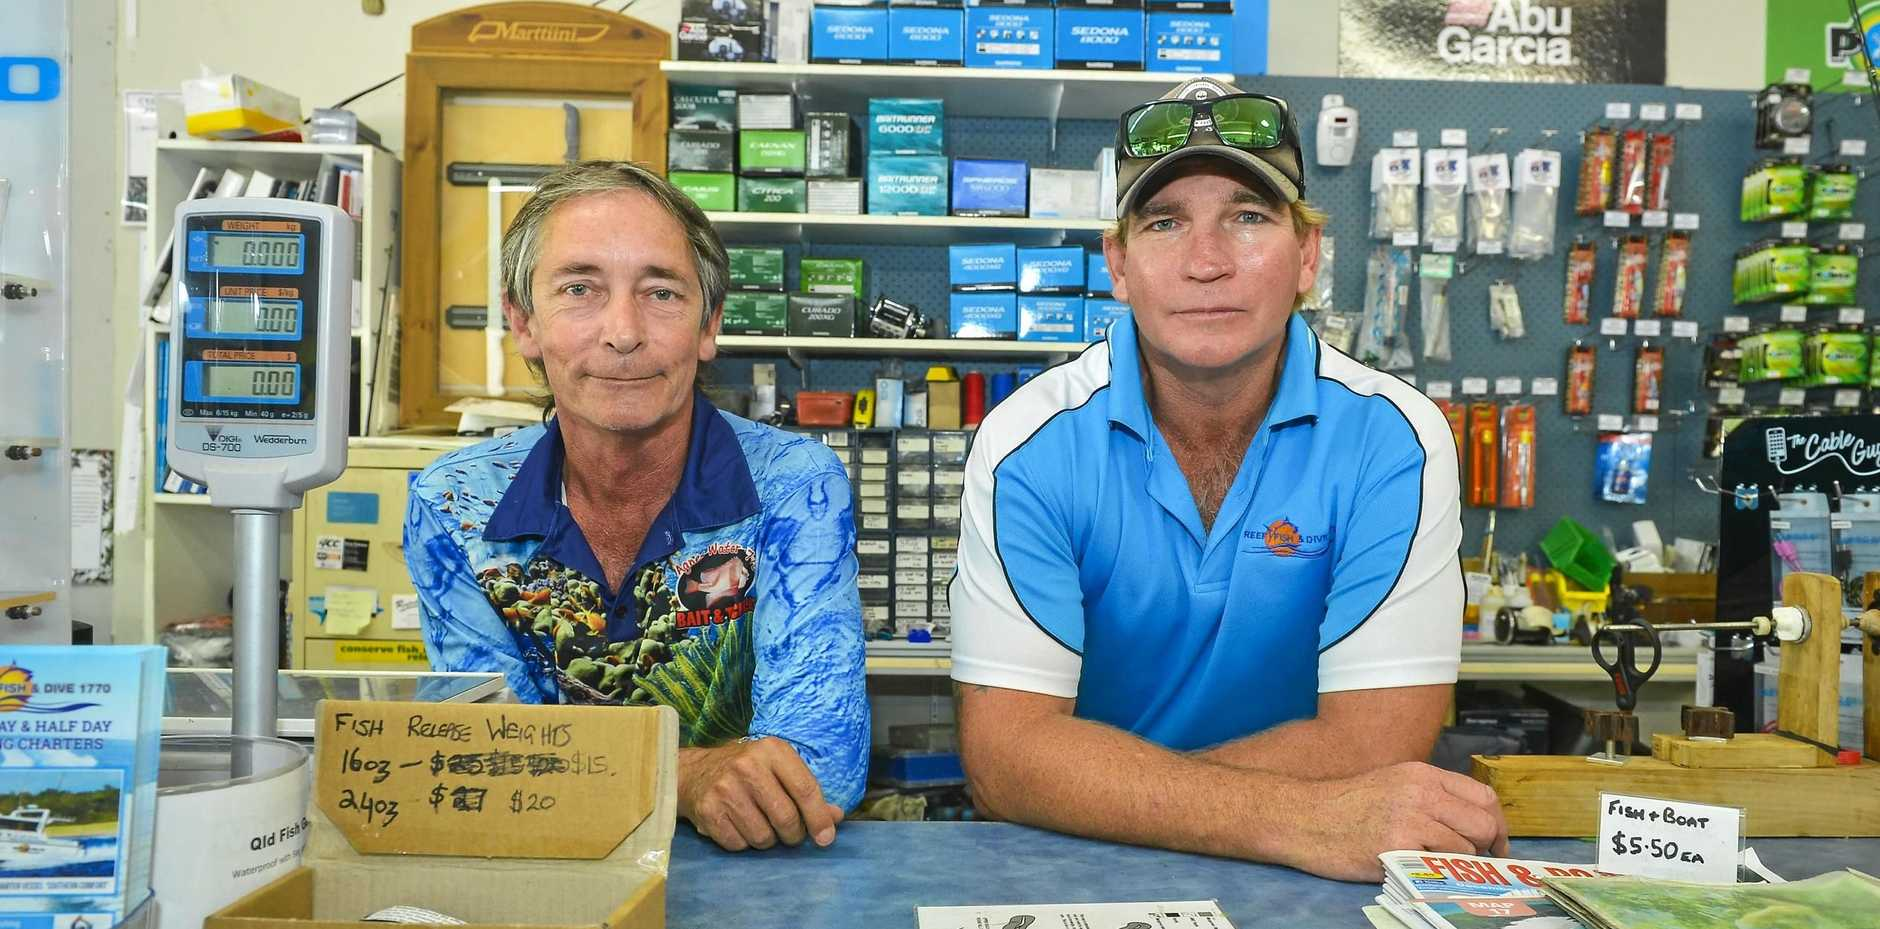 Tony Lunn of Agnes Water/1770 Bait and Tackle, with Dan Cremer of Reef Fish and Dive 1770, say the local economy is being negatively impaced by the sitation at Round Hill Creek.